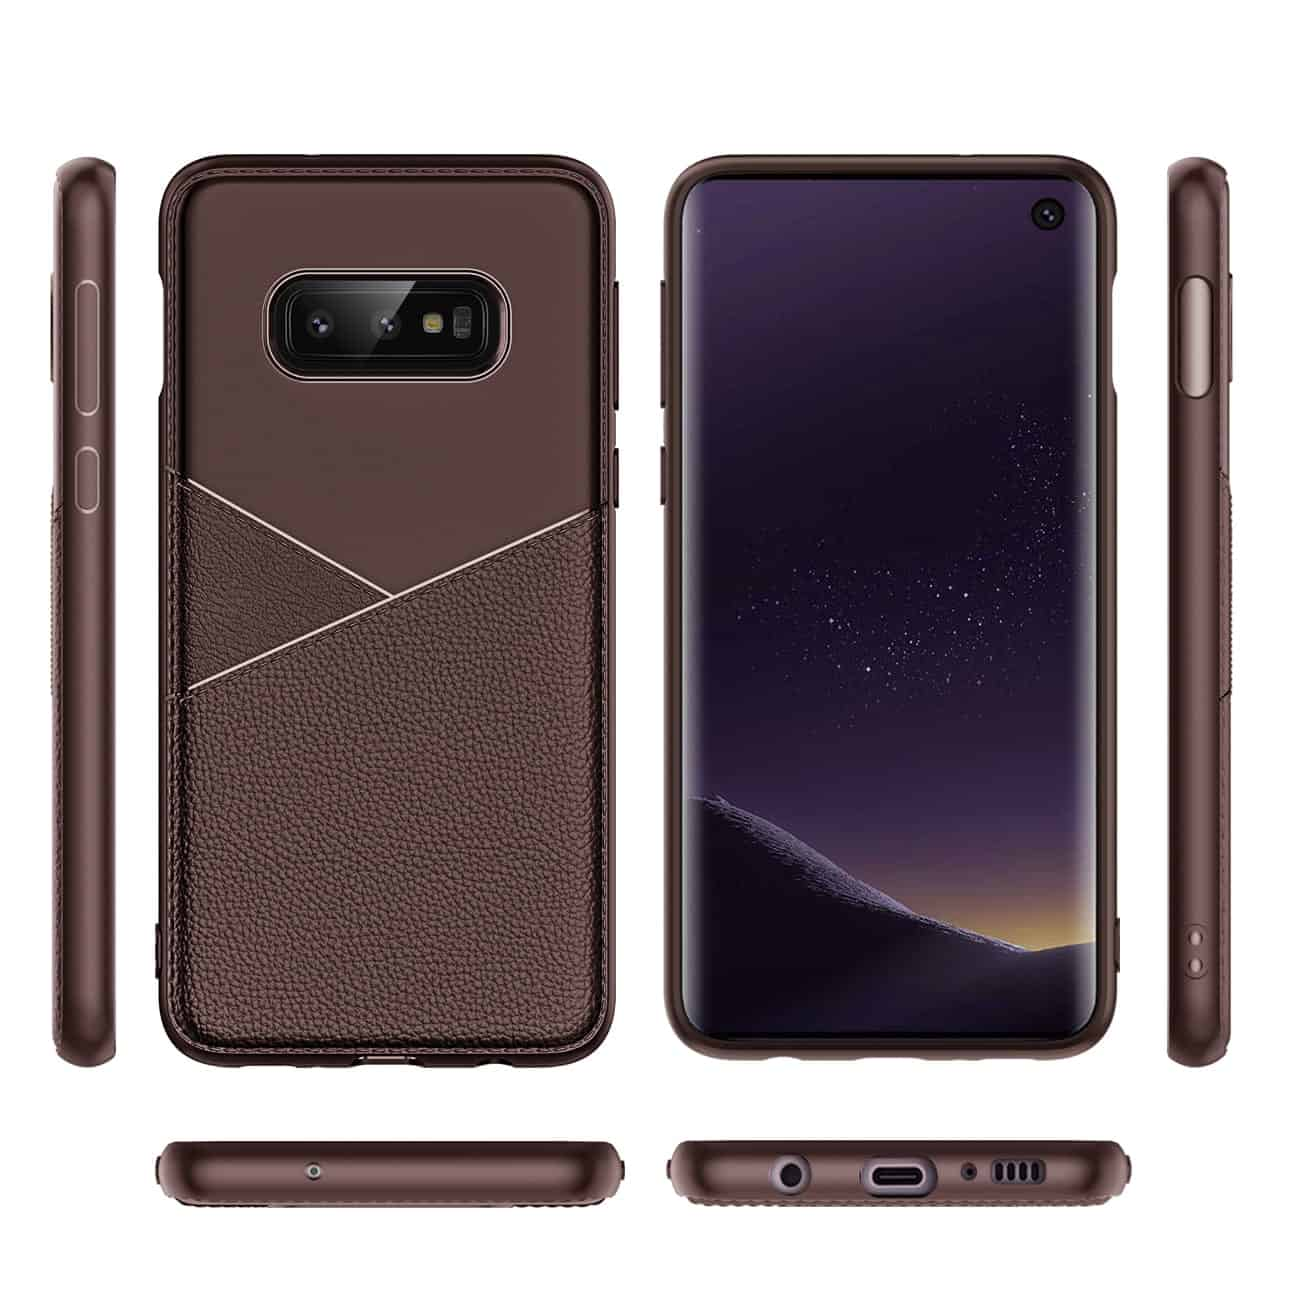 SAMSUNG GALAXY S10 Lite Soft Case in Brown